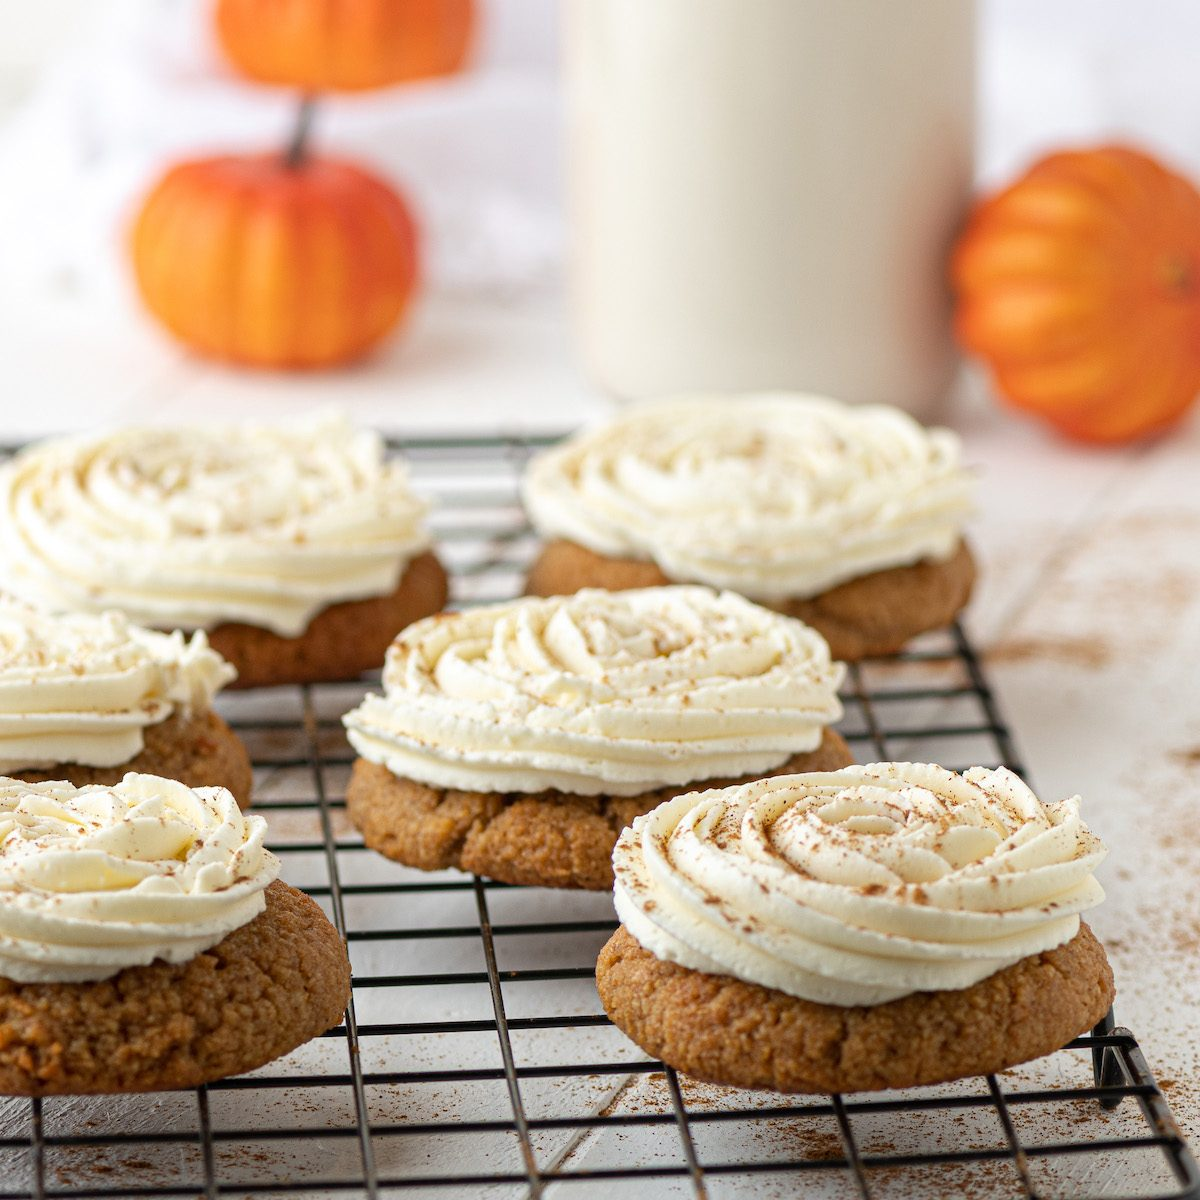 Sugar-free, low carb keto pumpkin cookies with frosting